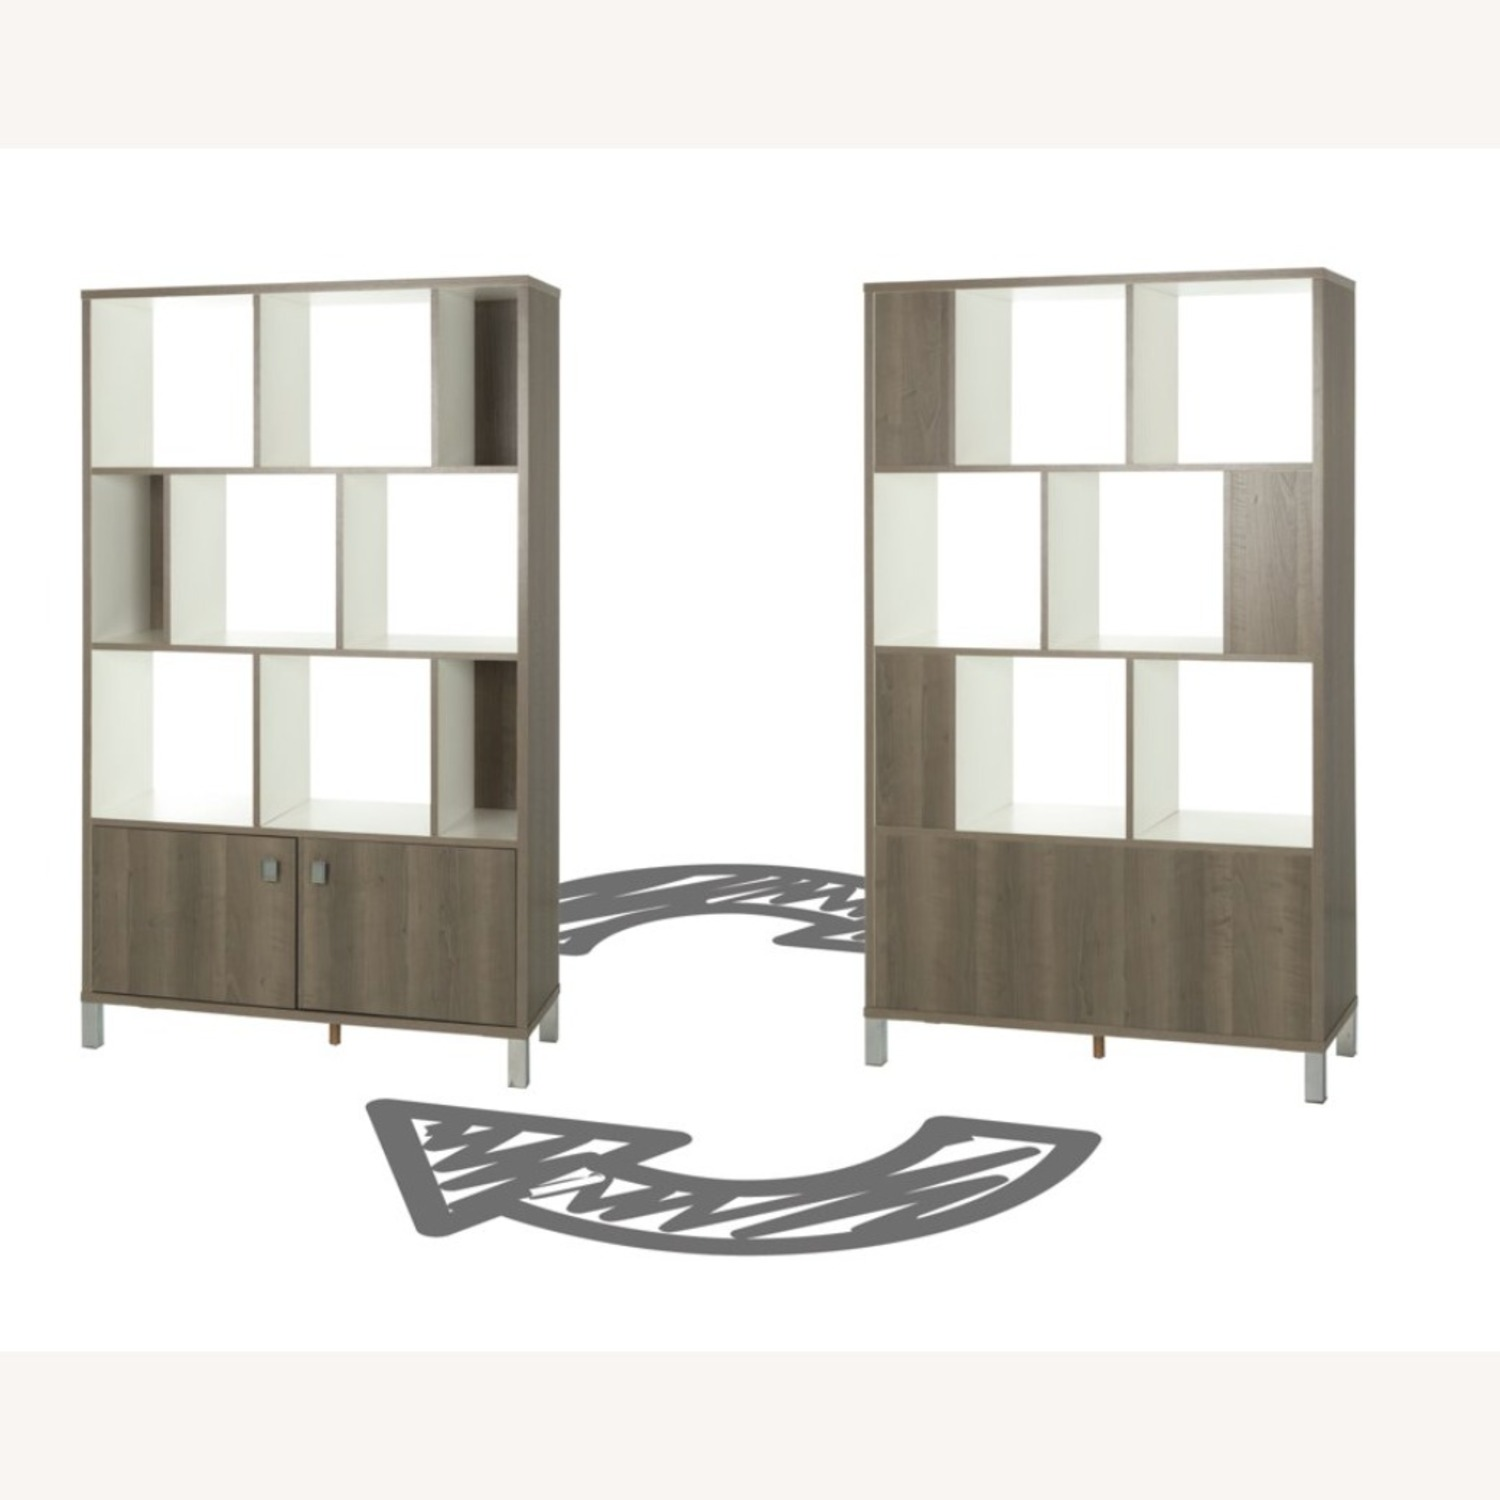 South Shore Expoz 9-Cube Shelving Unit With Doors - image-5